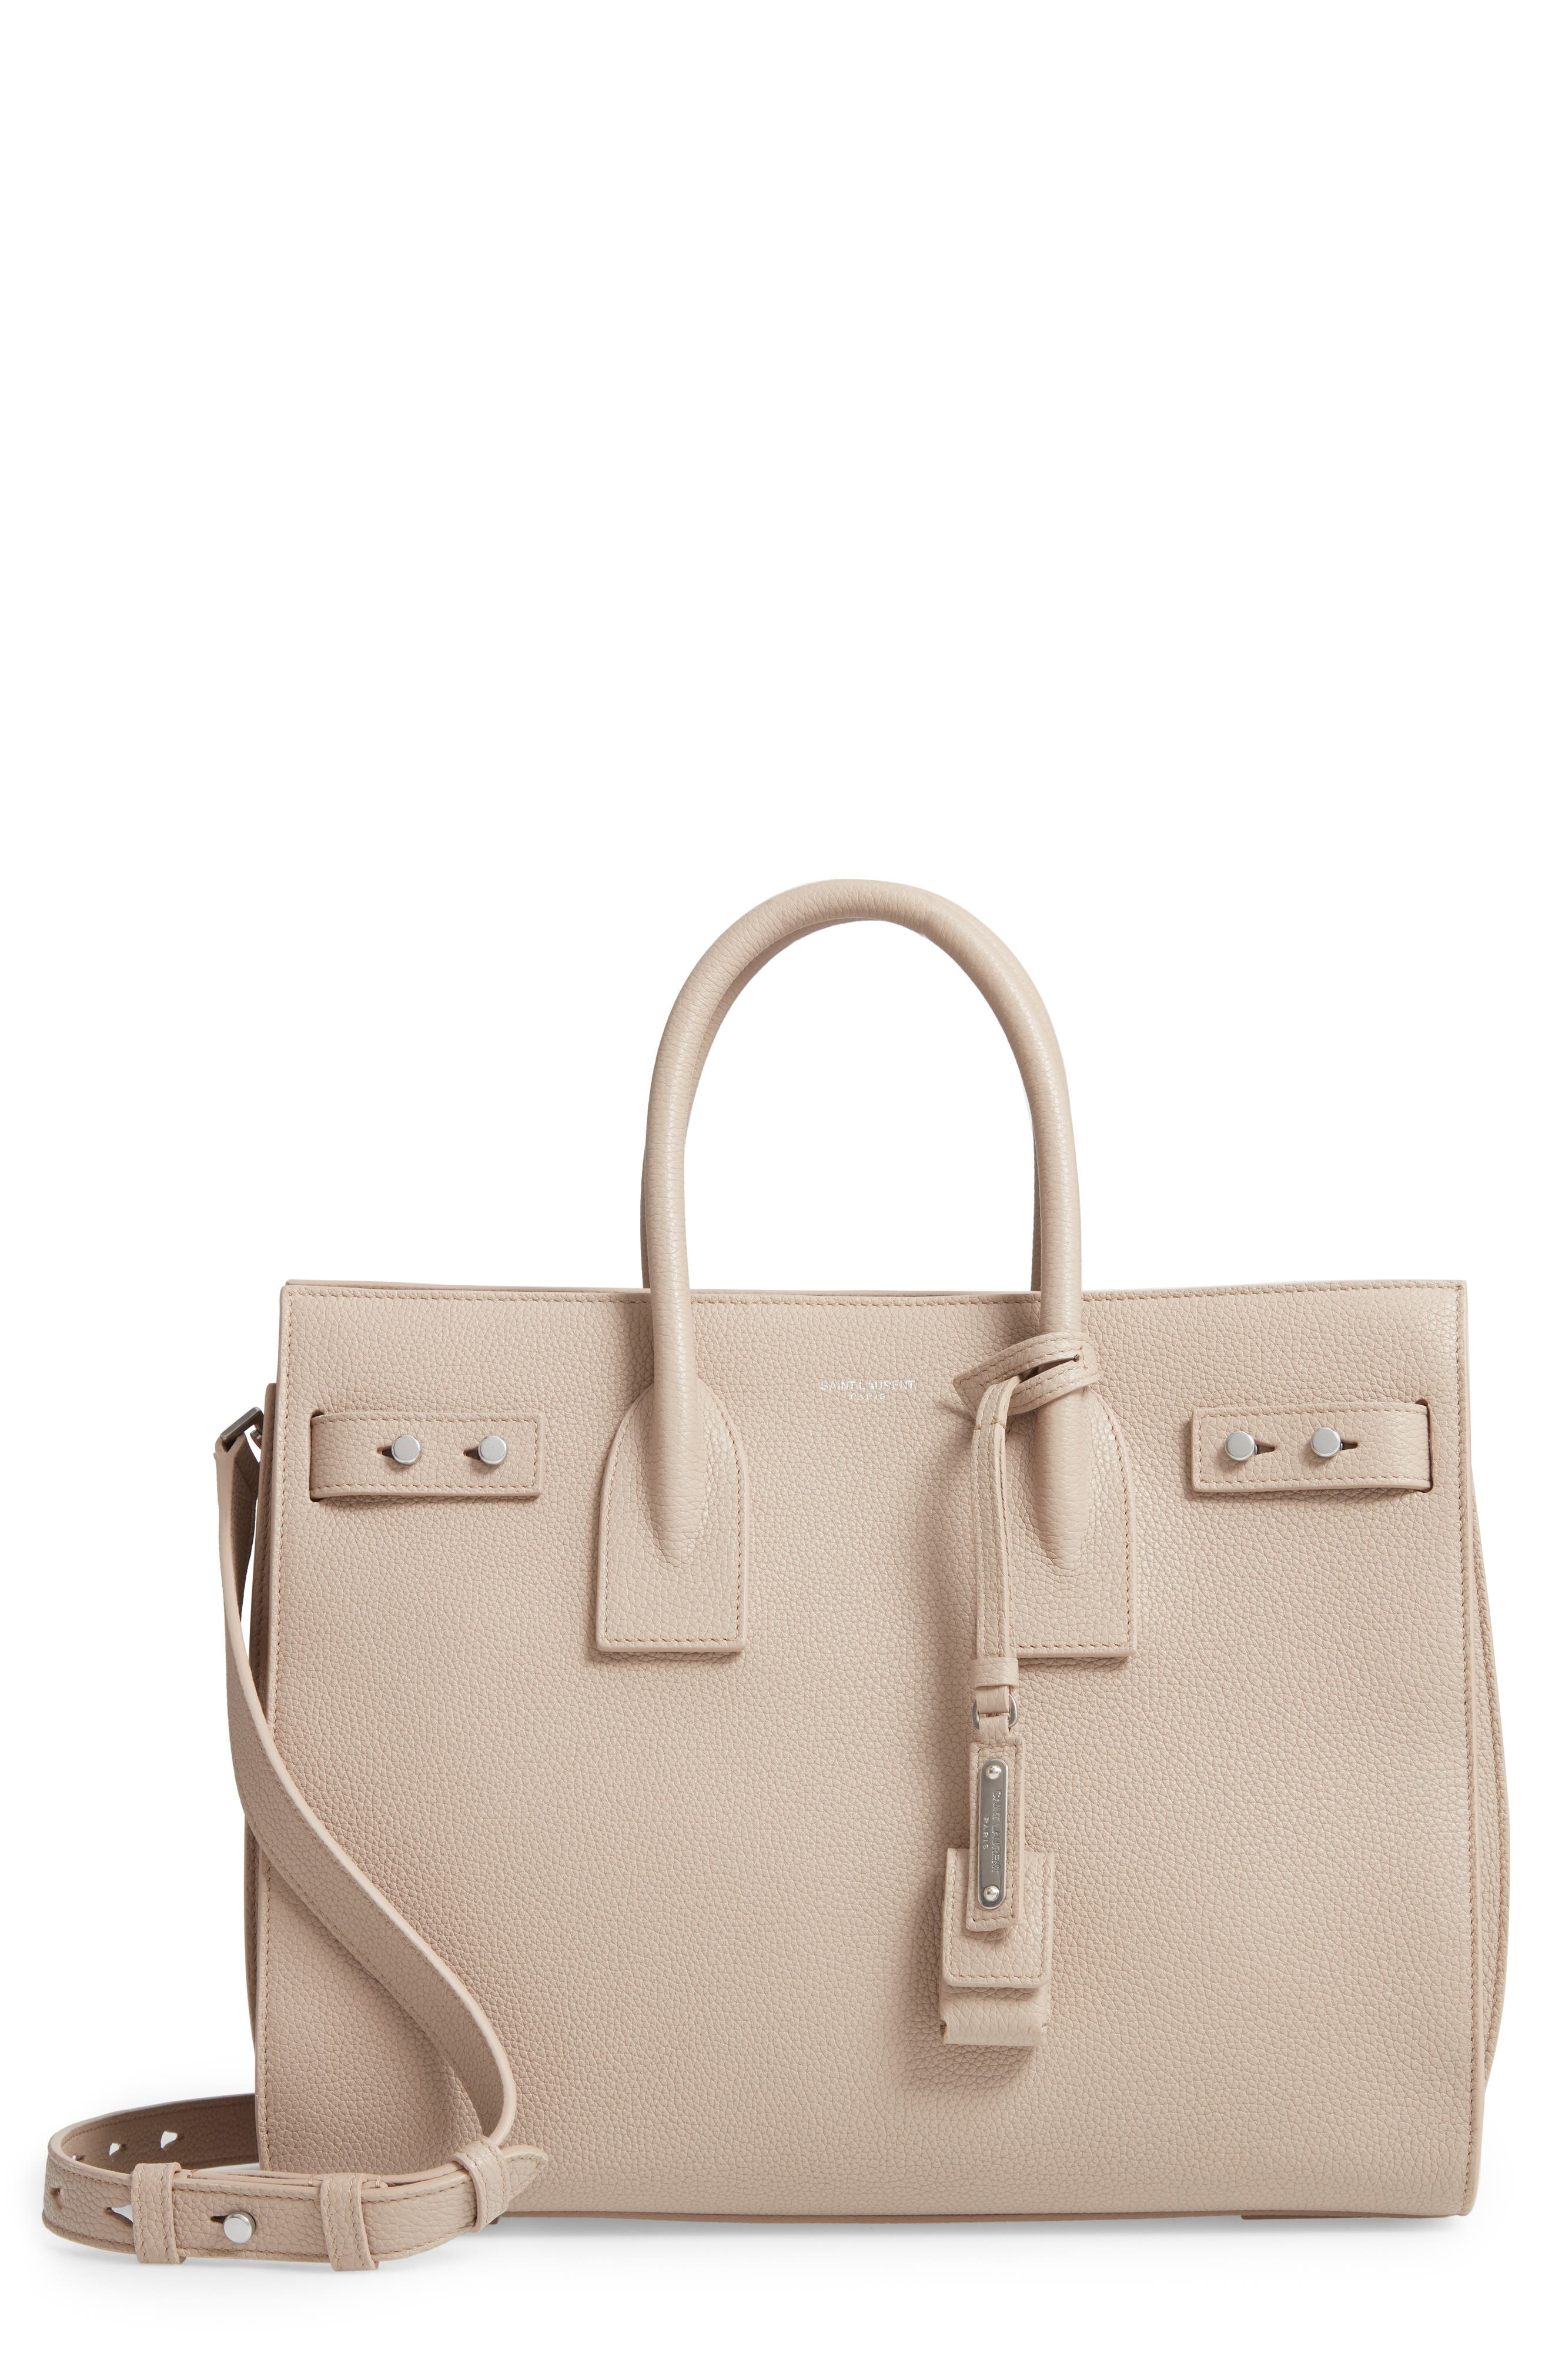 Small Sac de Jour Tote,                         Main,                         color, LIGHT NATURAL